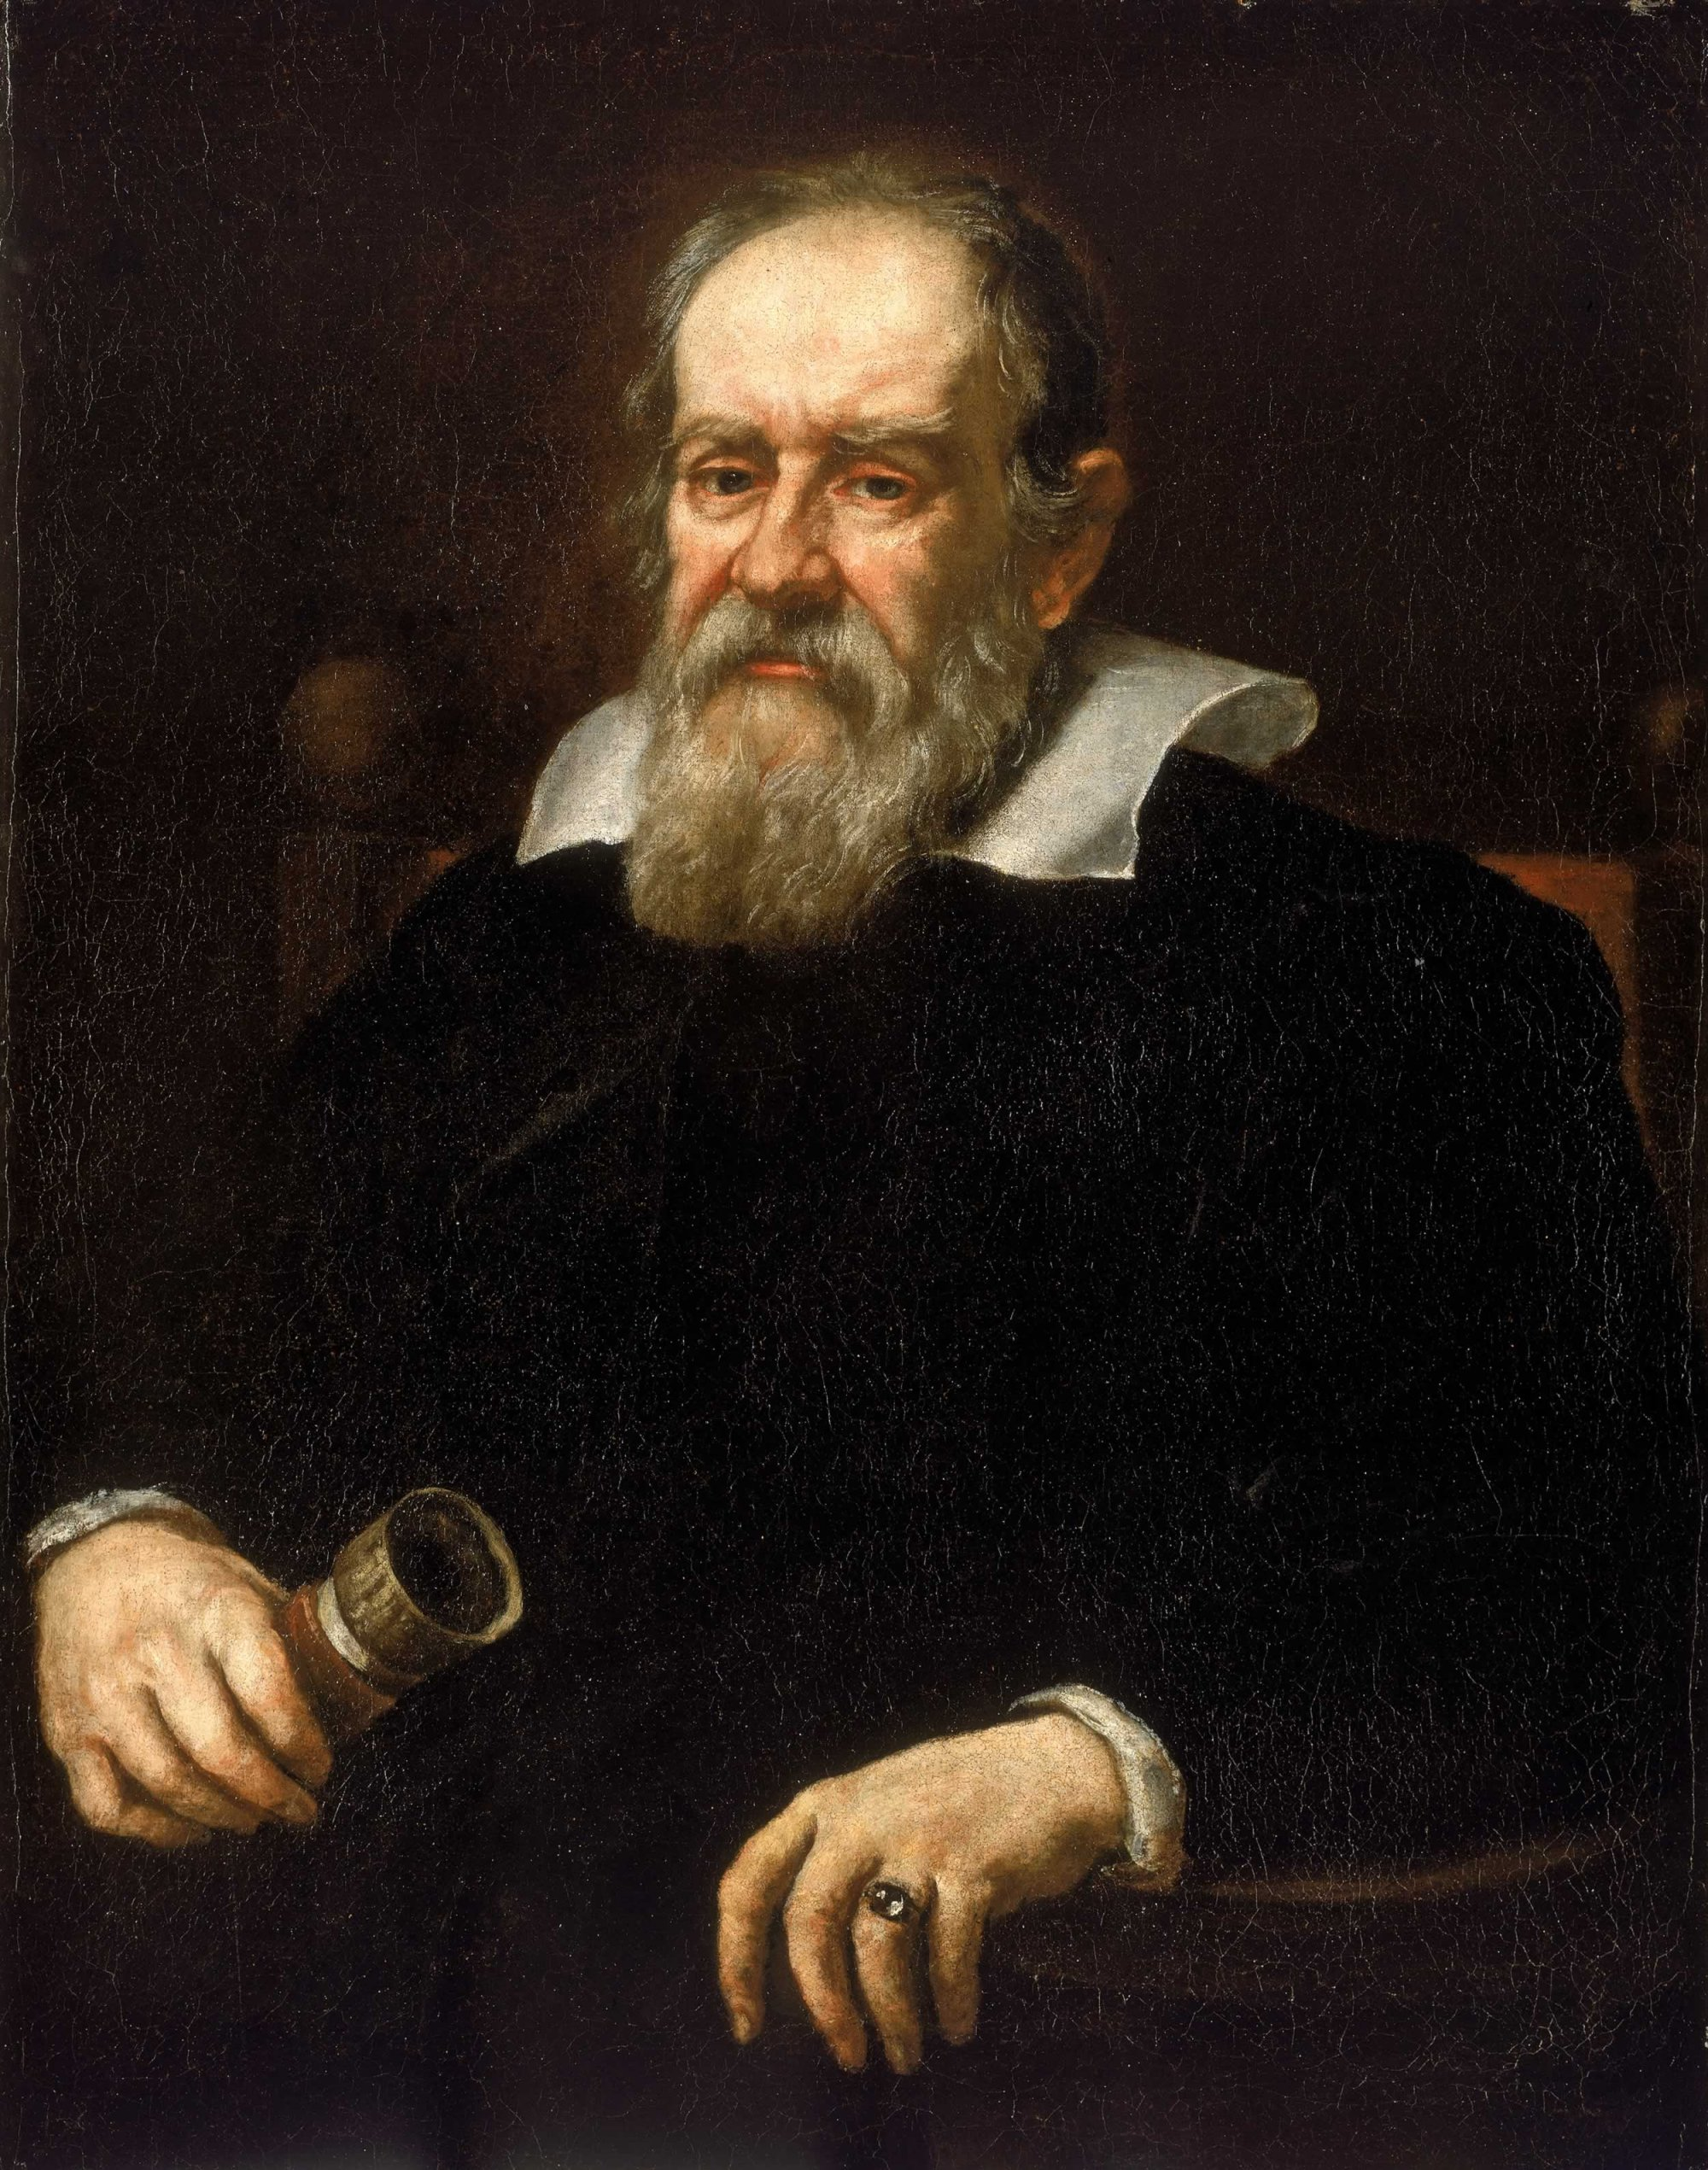 Expose Galileo burned for the phrase And yet it turns 93